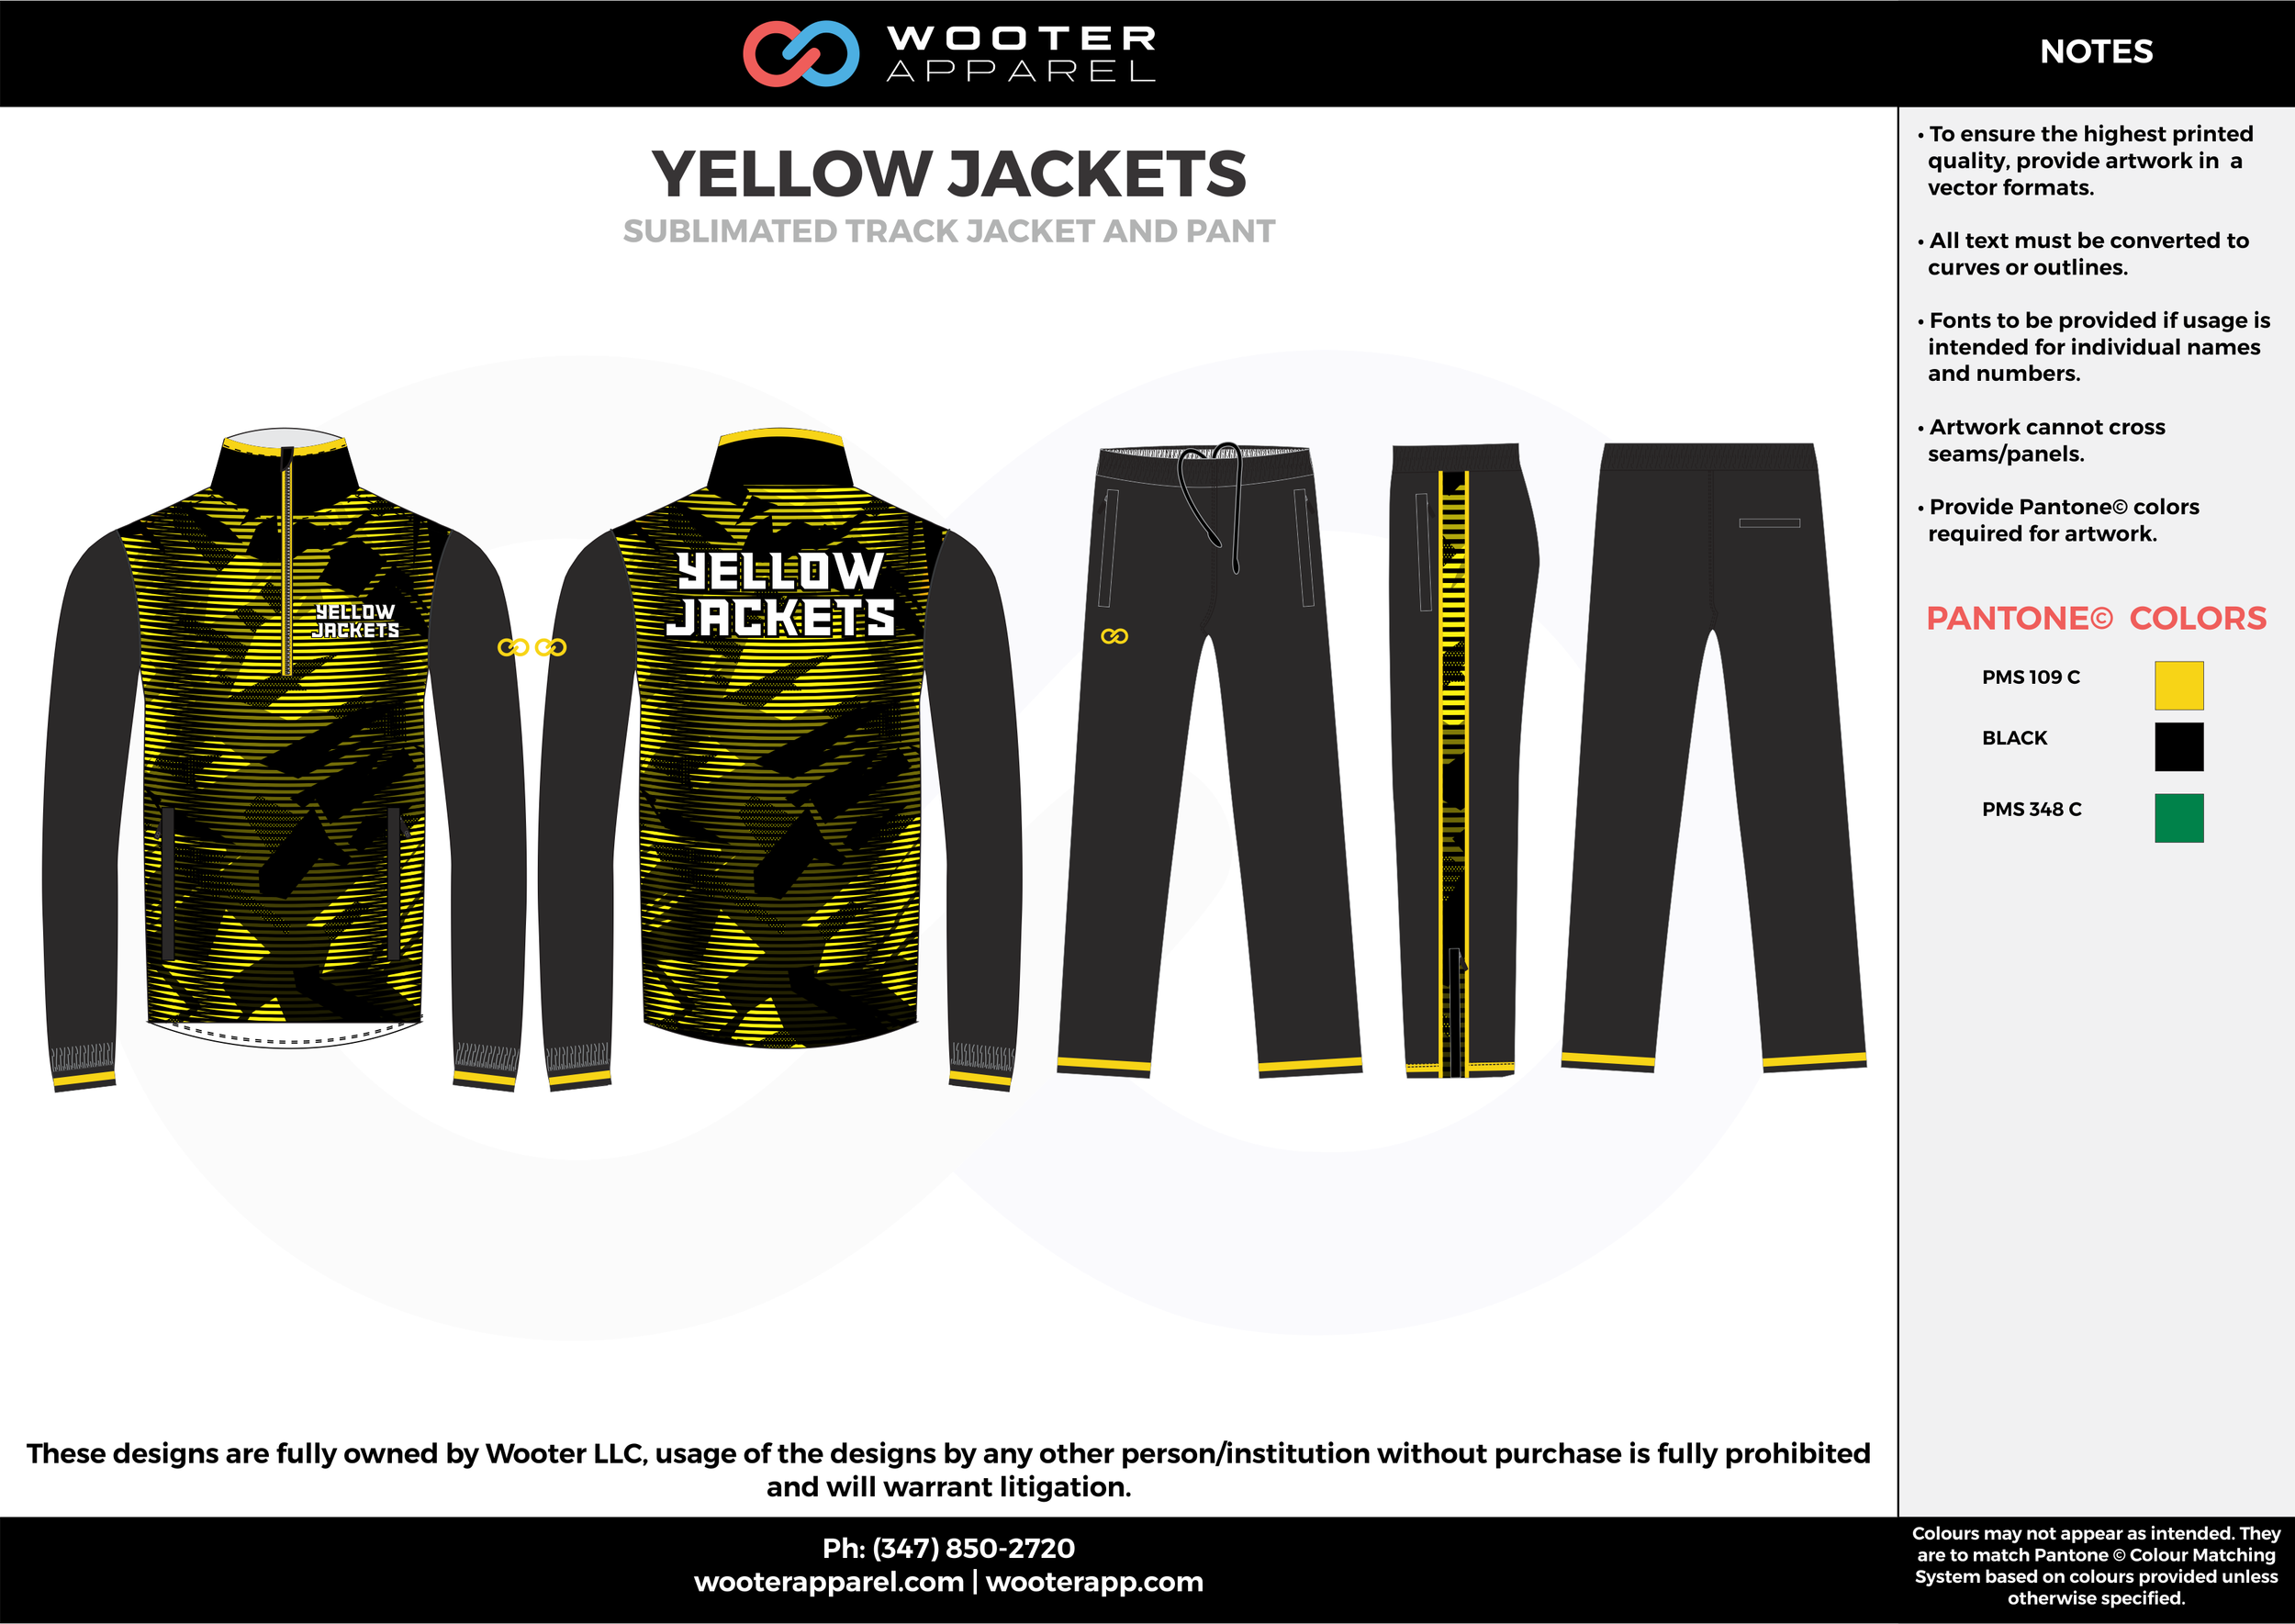 YELLOW JACKETS yellow black gray Track Jacket, Track Pants, Tracksuit, Warmup Suit